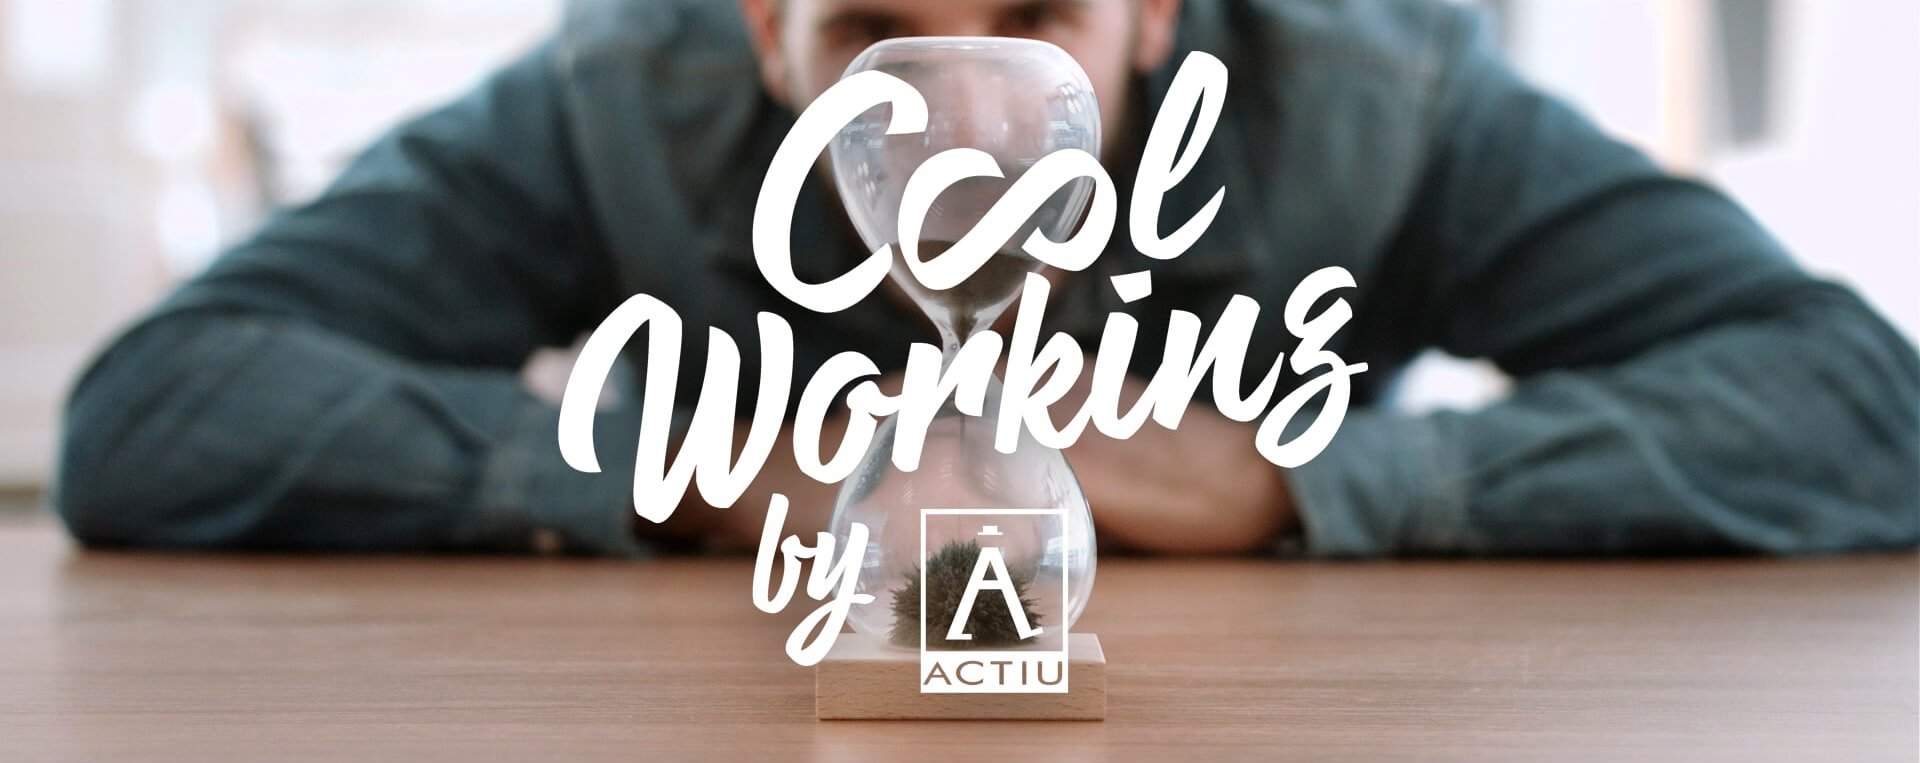 COOL WORKING BY ACTIU de David Valero